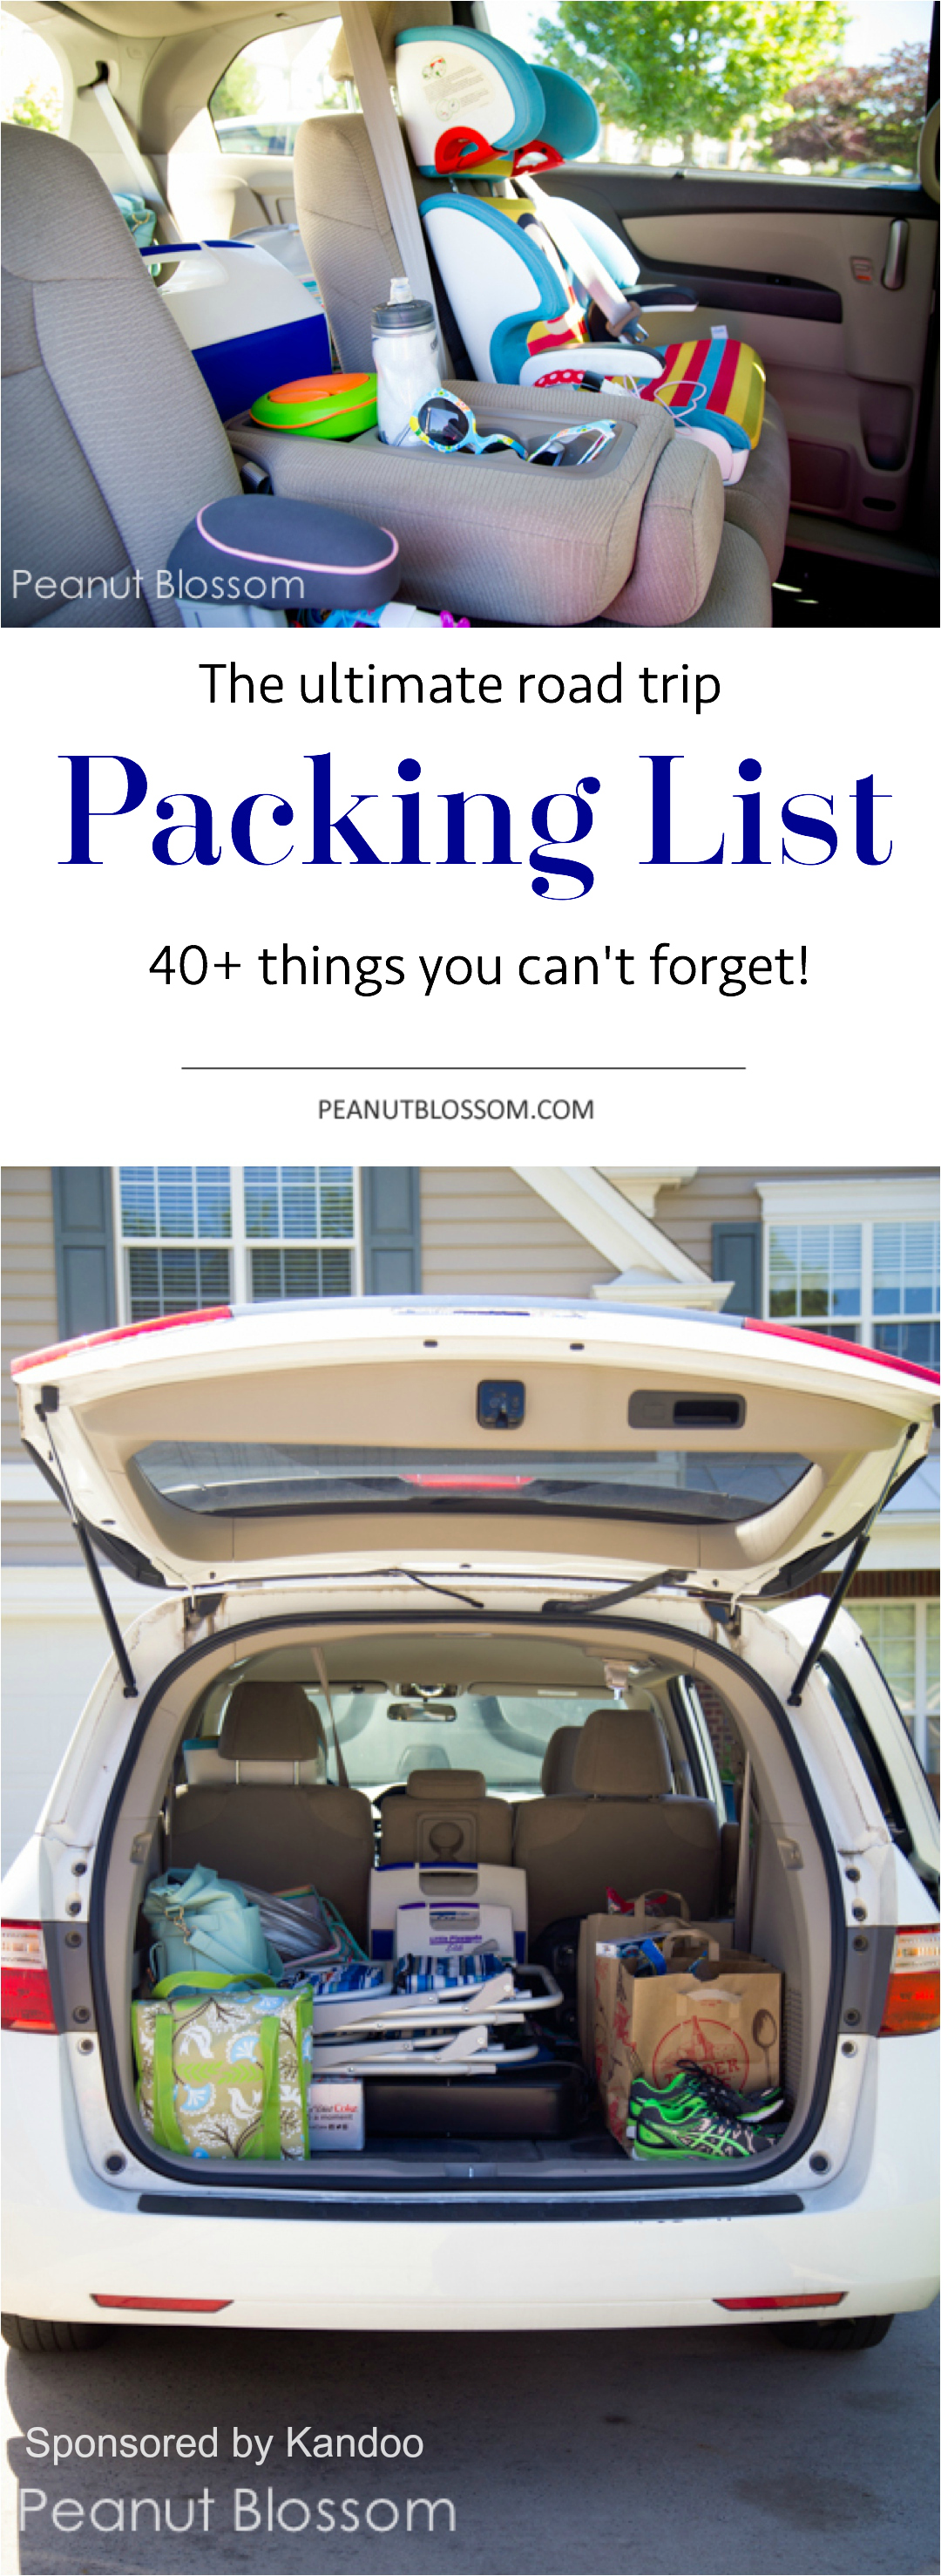 the ultimate list of road trip necessities: 40+ things to keep in